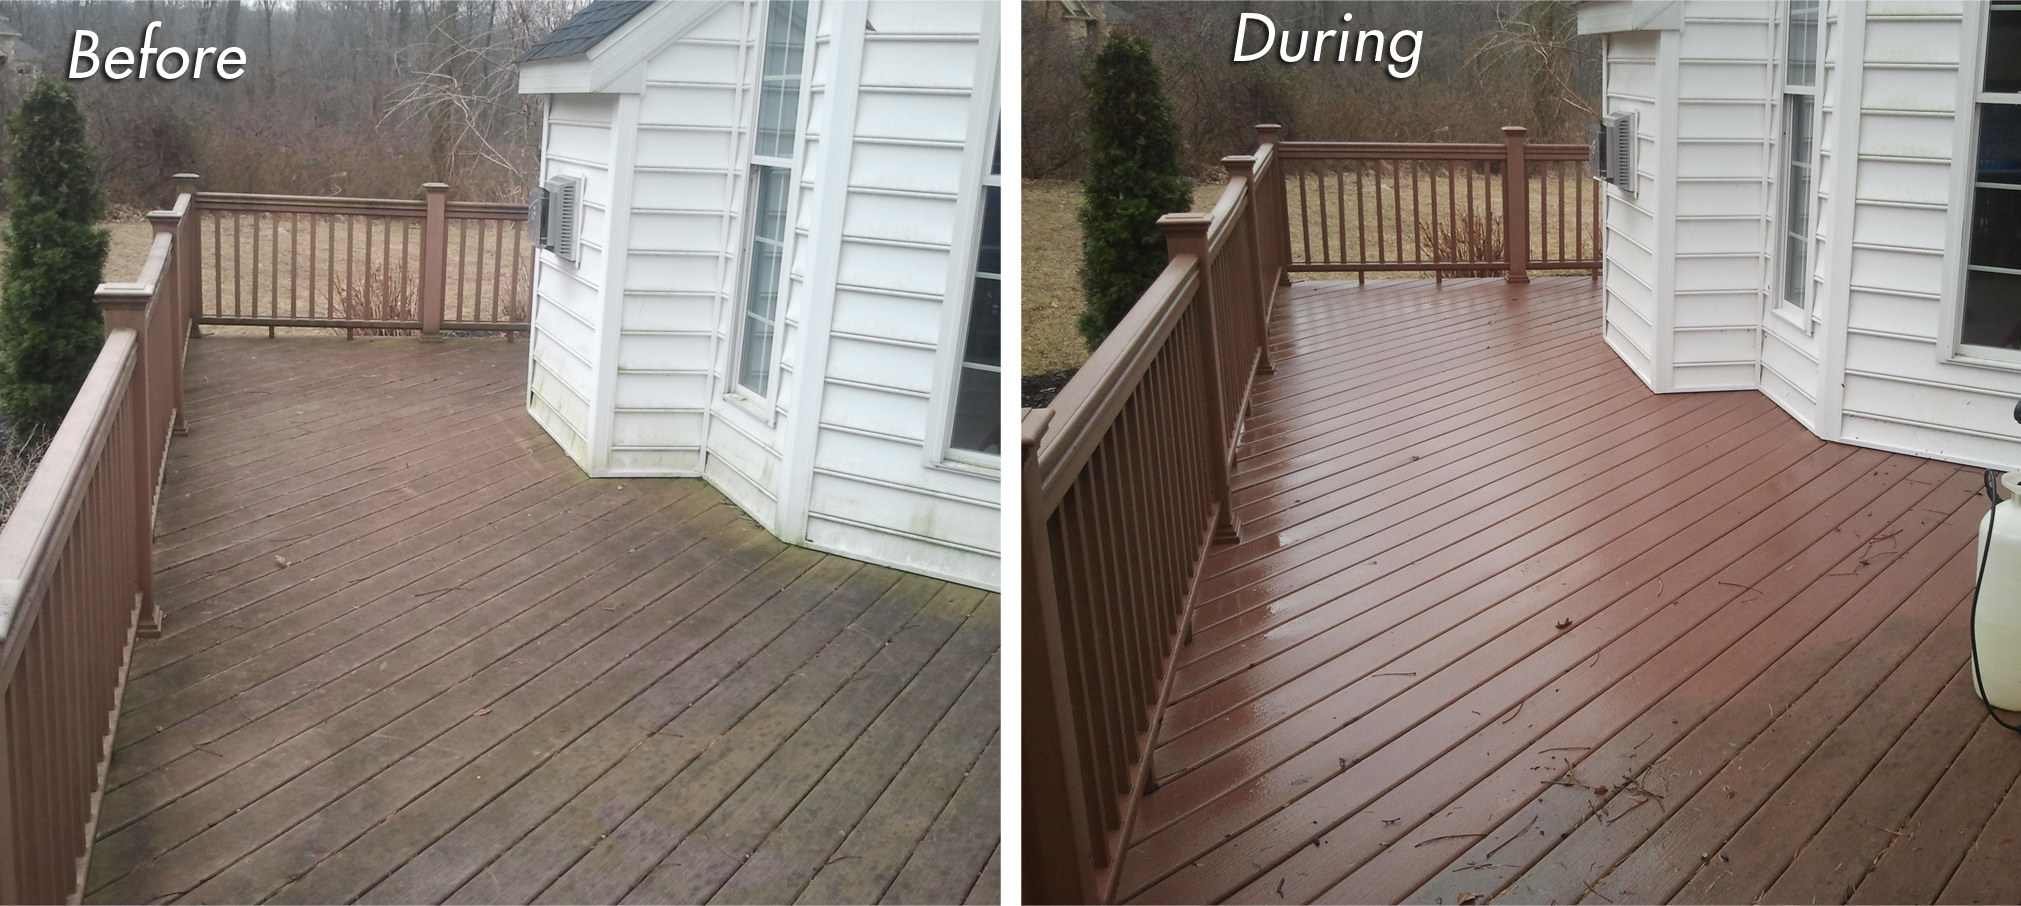 Beautiful Pressure Washing Composite Deck | Lancaster County PA. We ...